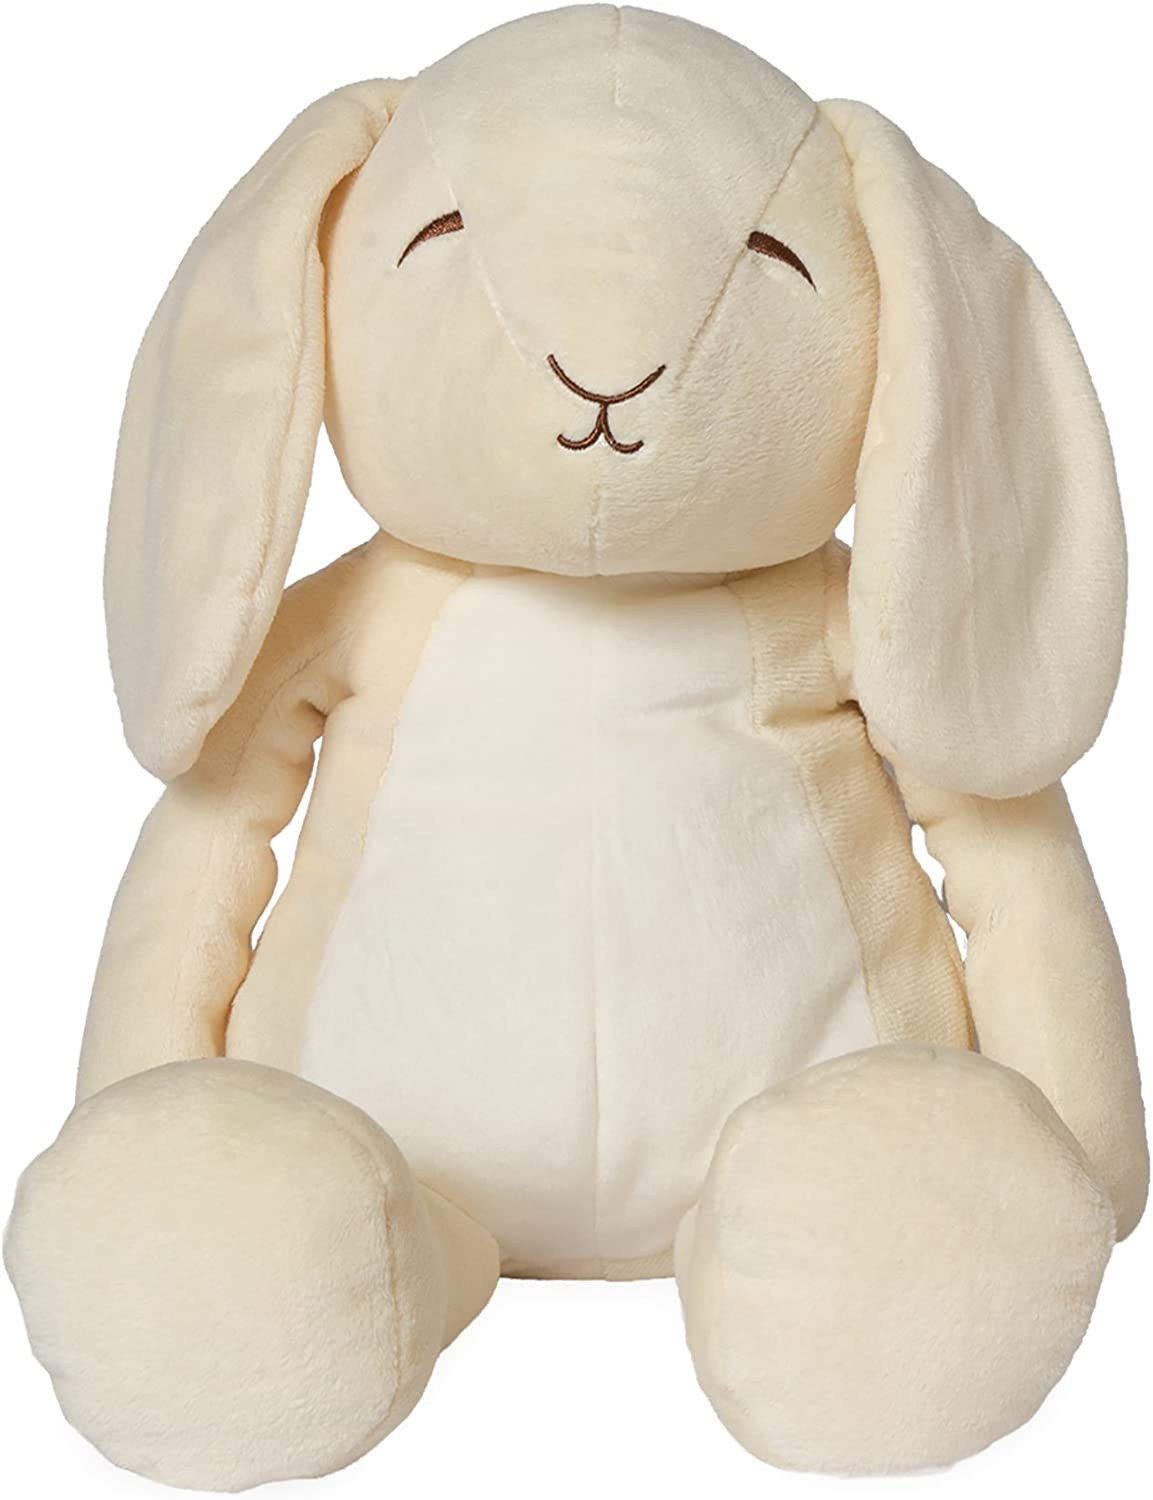 "Manhattan Toy Huggables Daisy Bunny 10"" Plush"